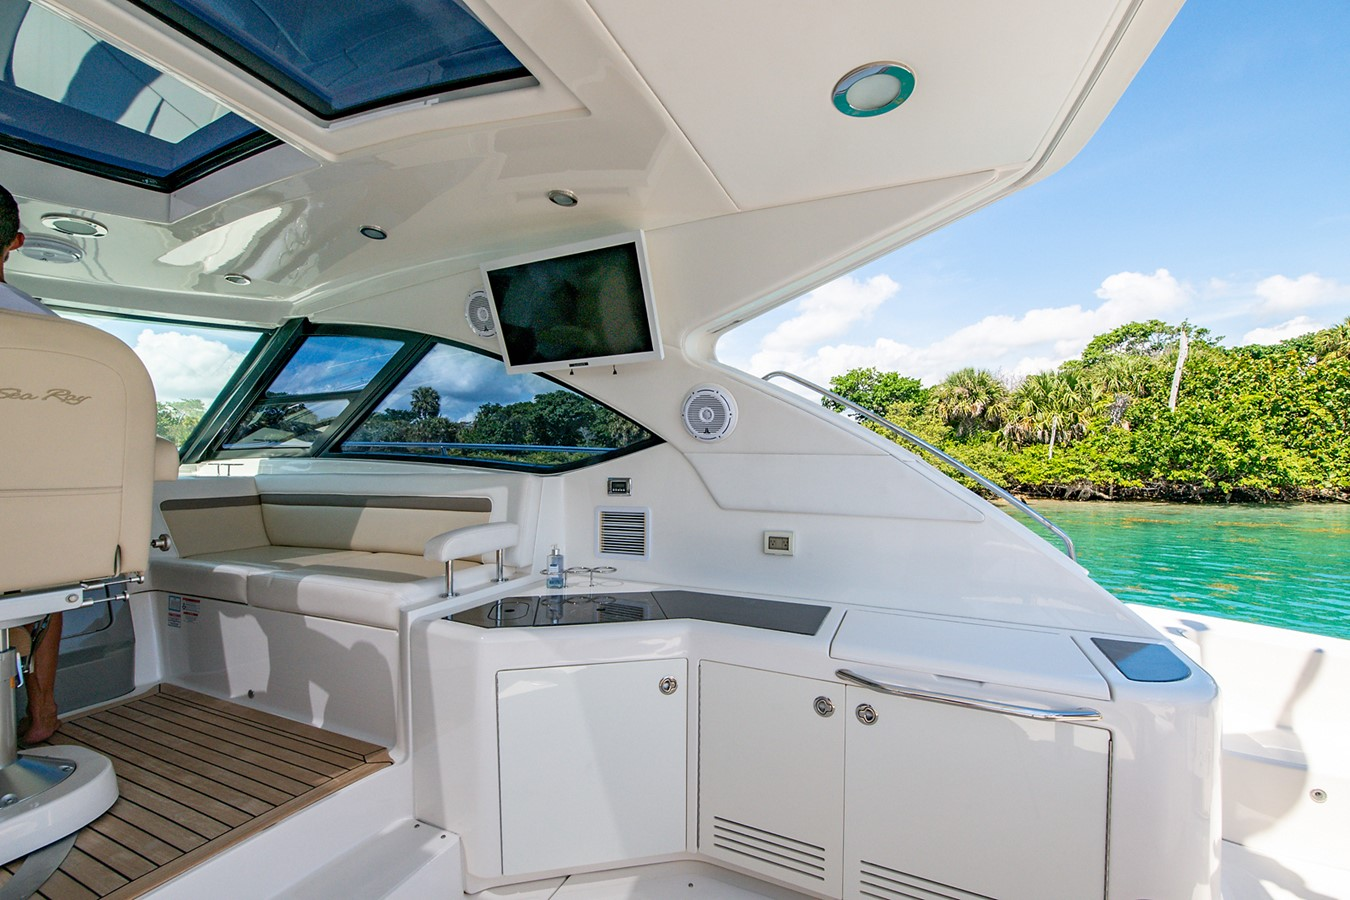 2013 SEA RAY Sundancer Motor Yacht 2531141